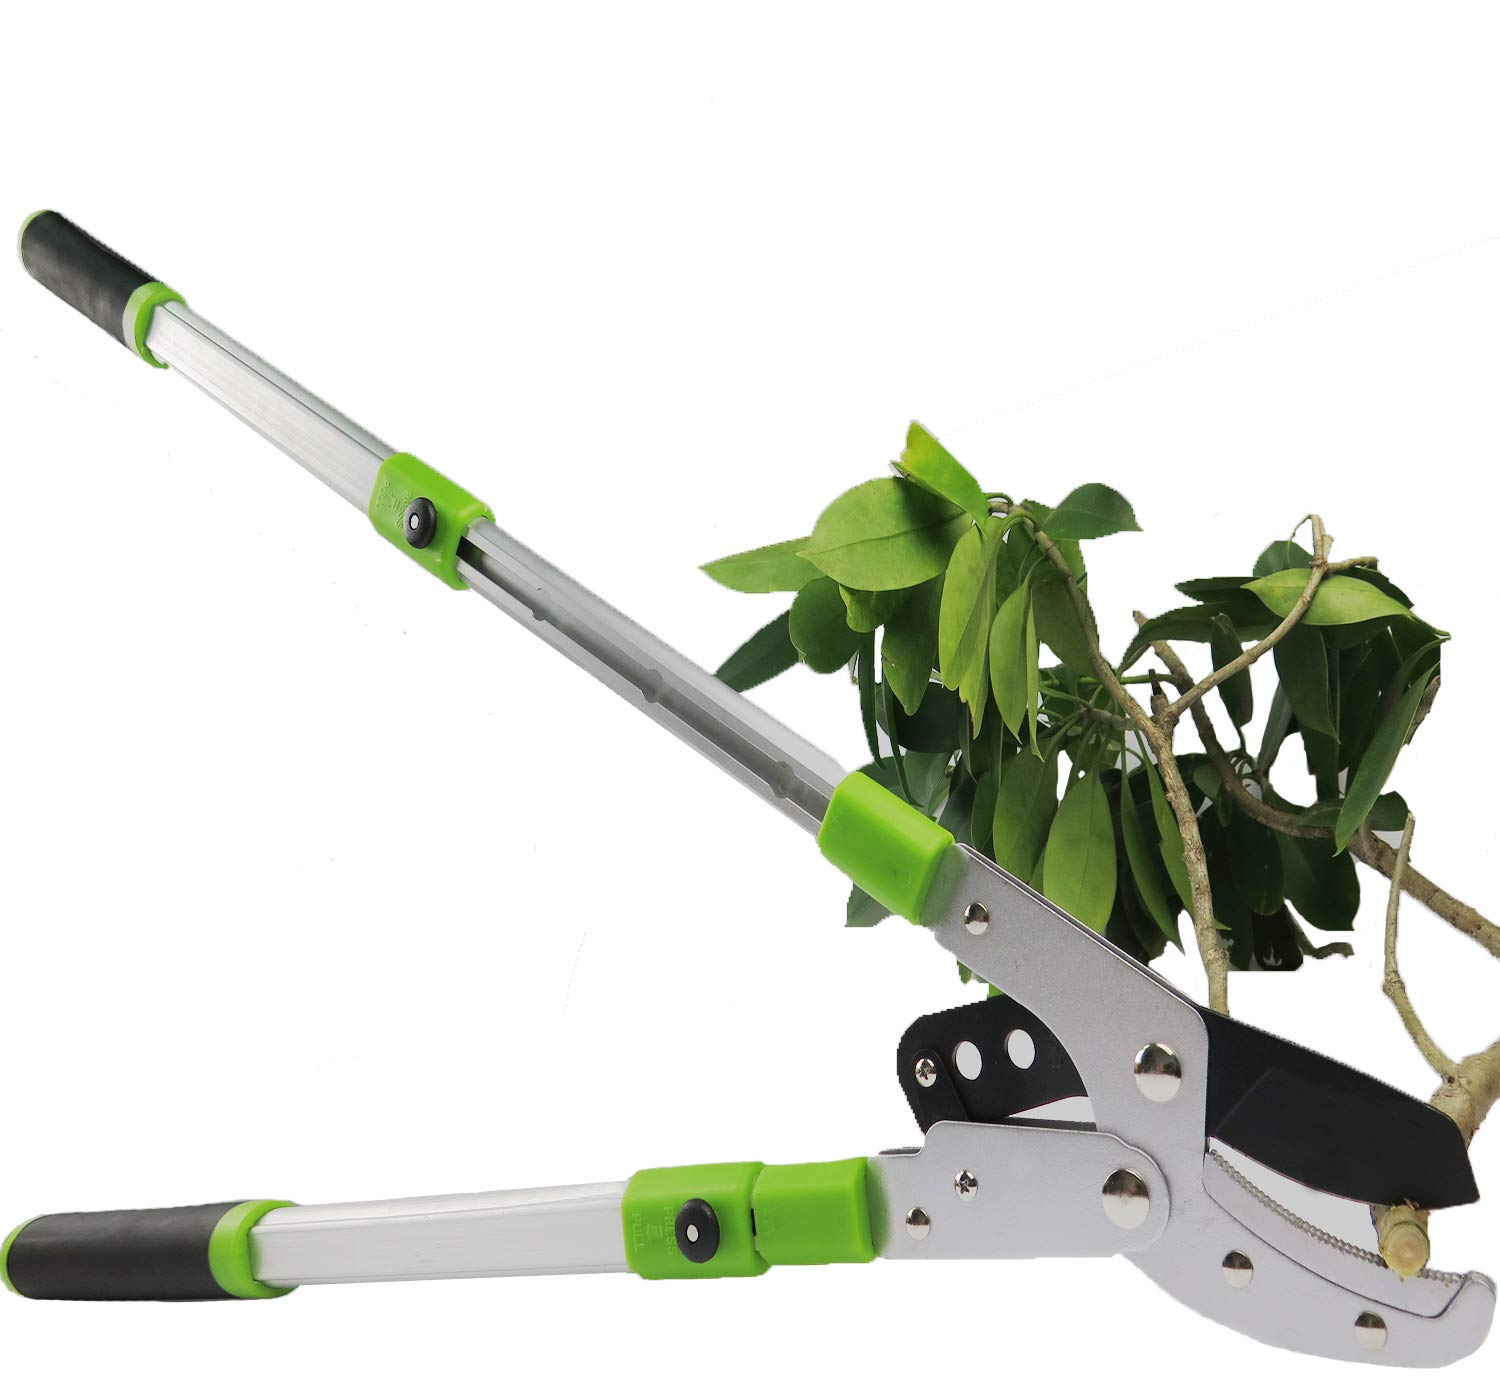 "Mesoga Lever Drive Anvil Lopper, 24""-40.5""Extendable Compound Action Tree Trimmer, SK-5 Steel Blade 2"" Branches Cutting Capacity, Sturdy Bypass Garden Hedge Pruning with Lightweight Aluminum Handles"